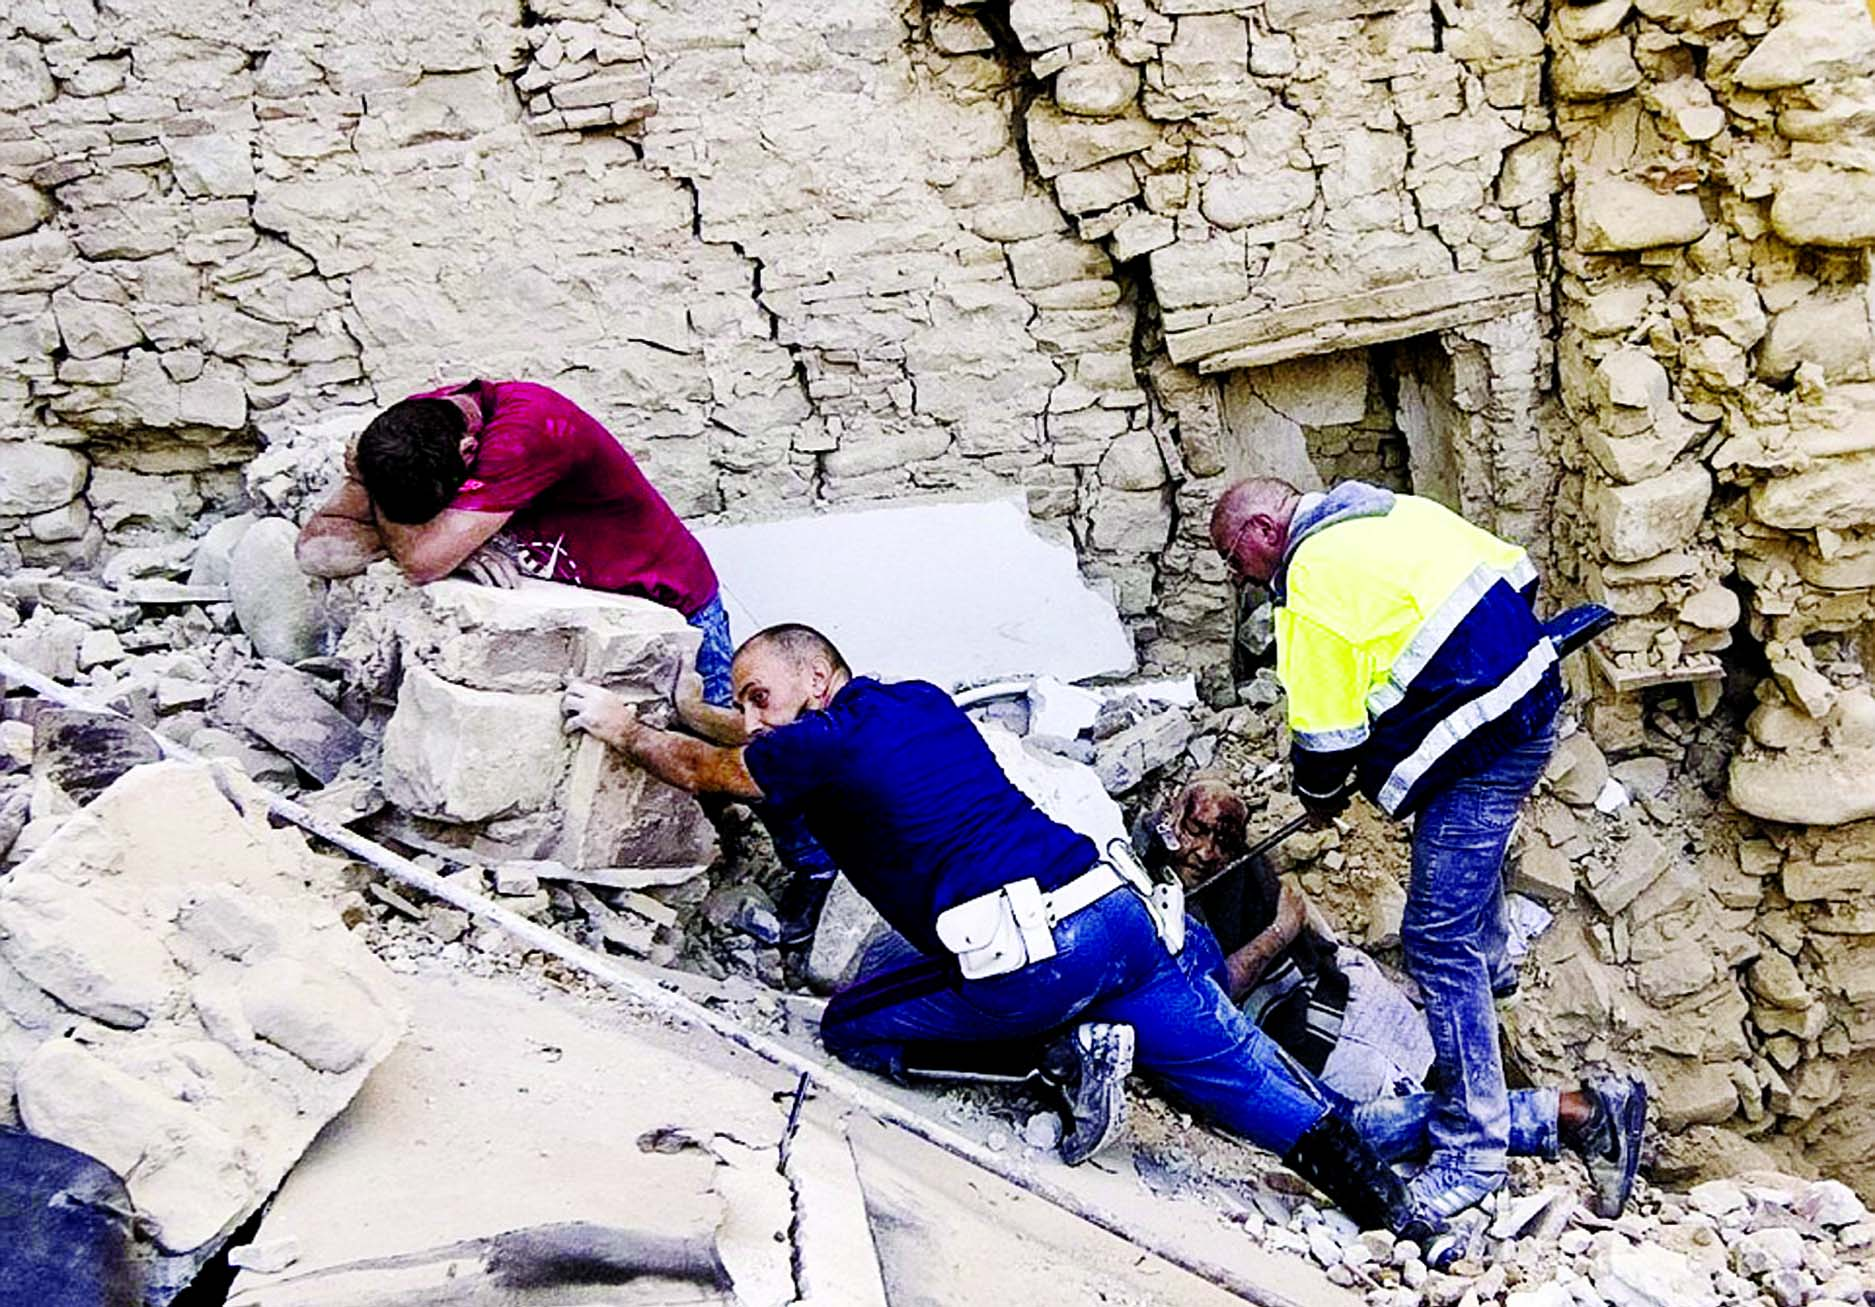 A man cries (left) as the injured local is delicately pulled from the rubble while another rescuer prevents bricks from sliding down on top of him.